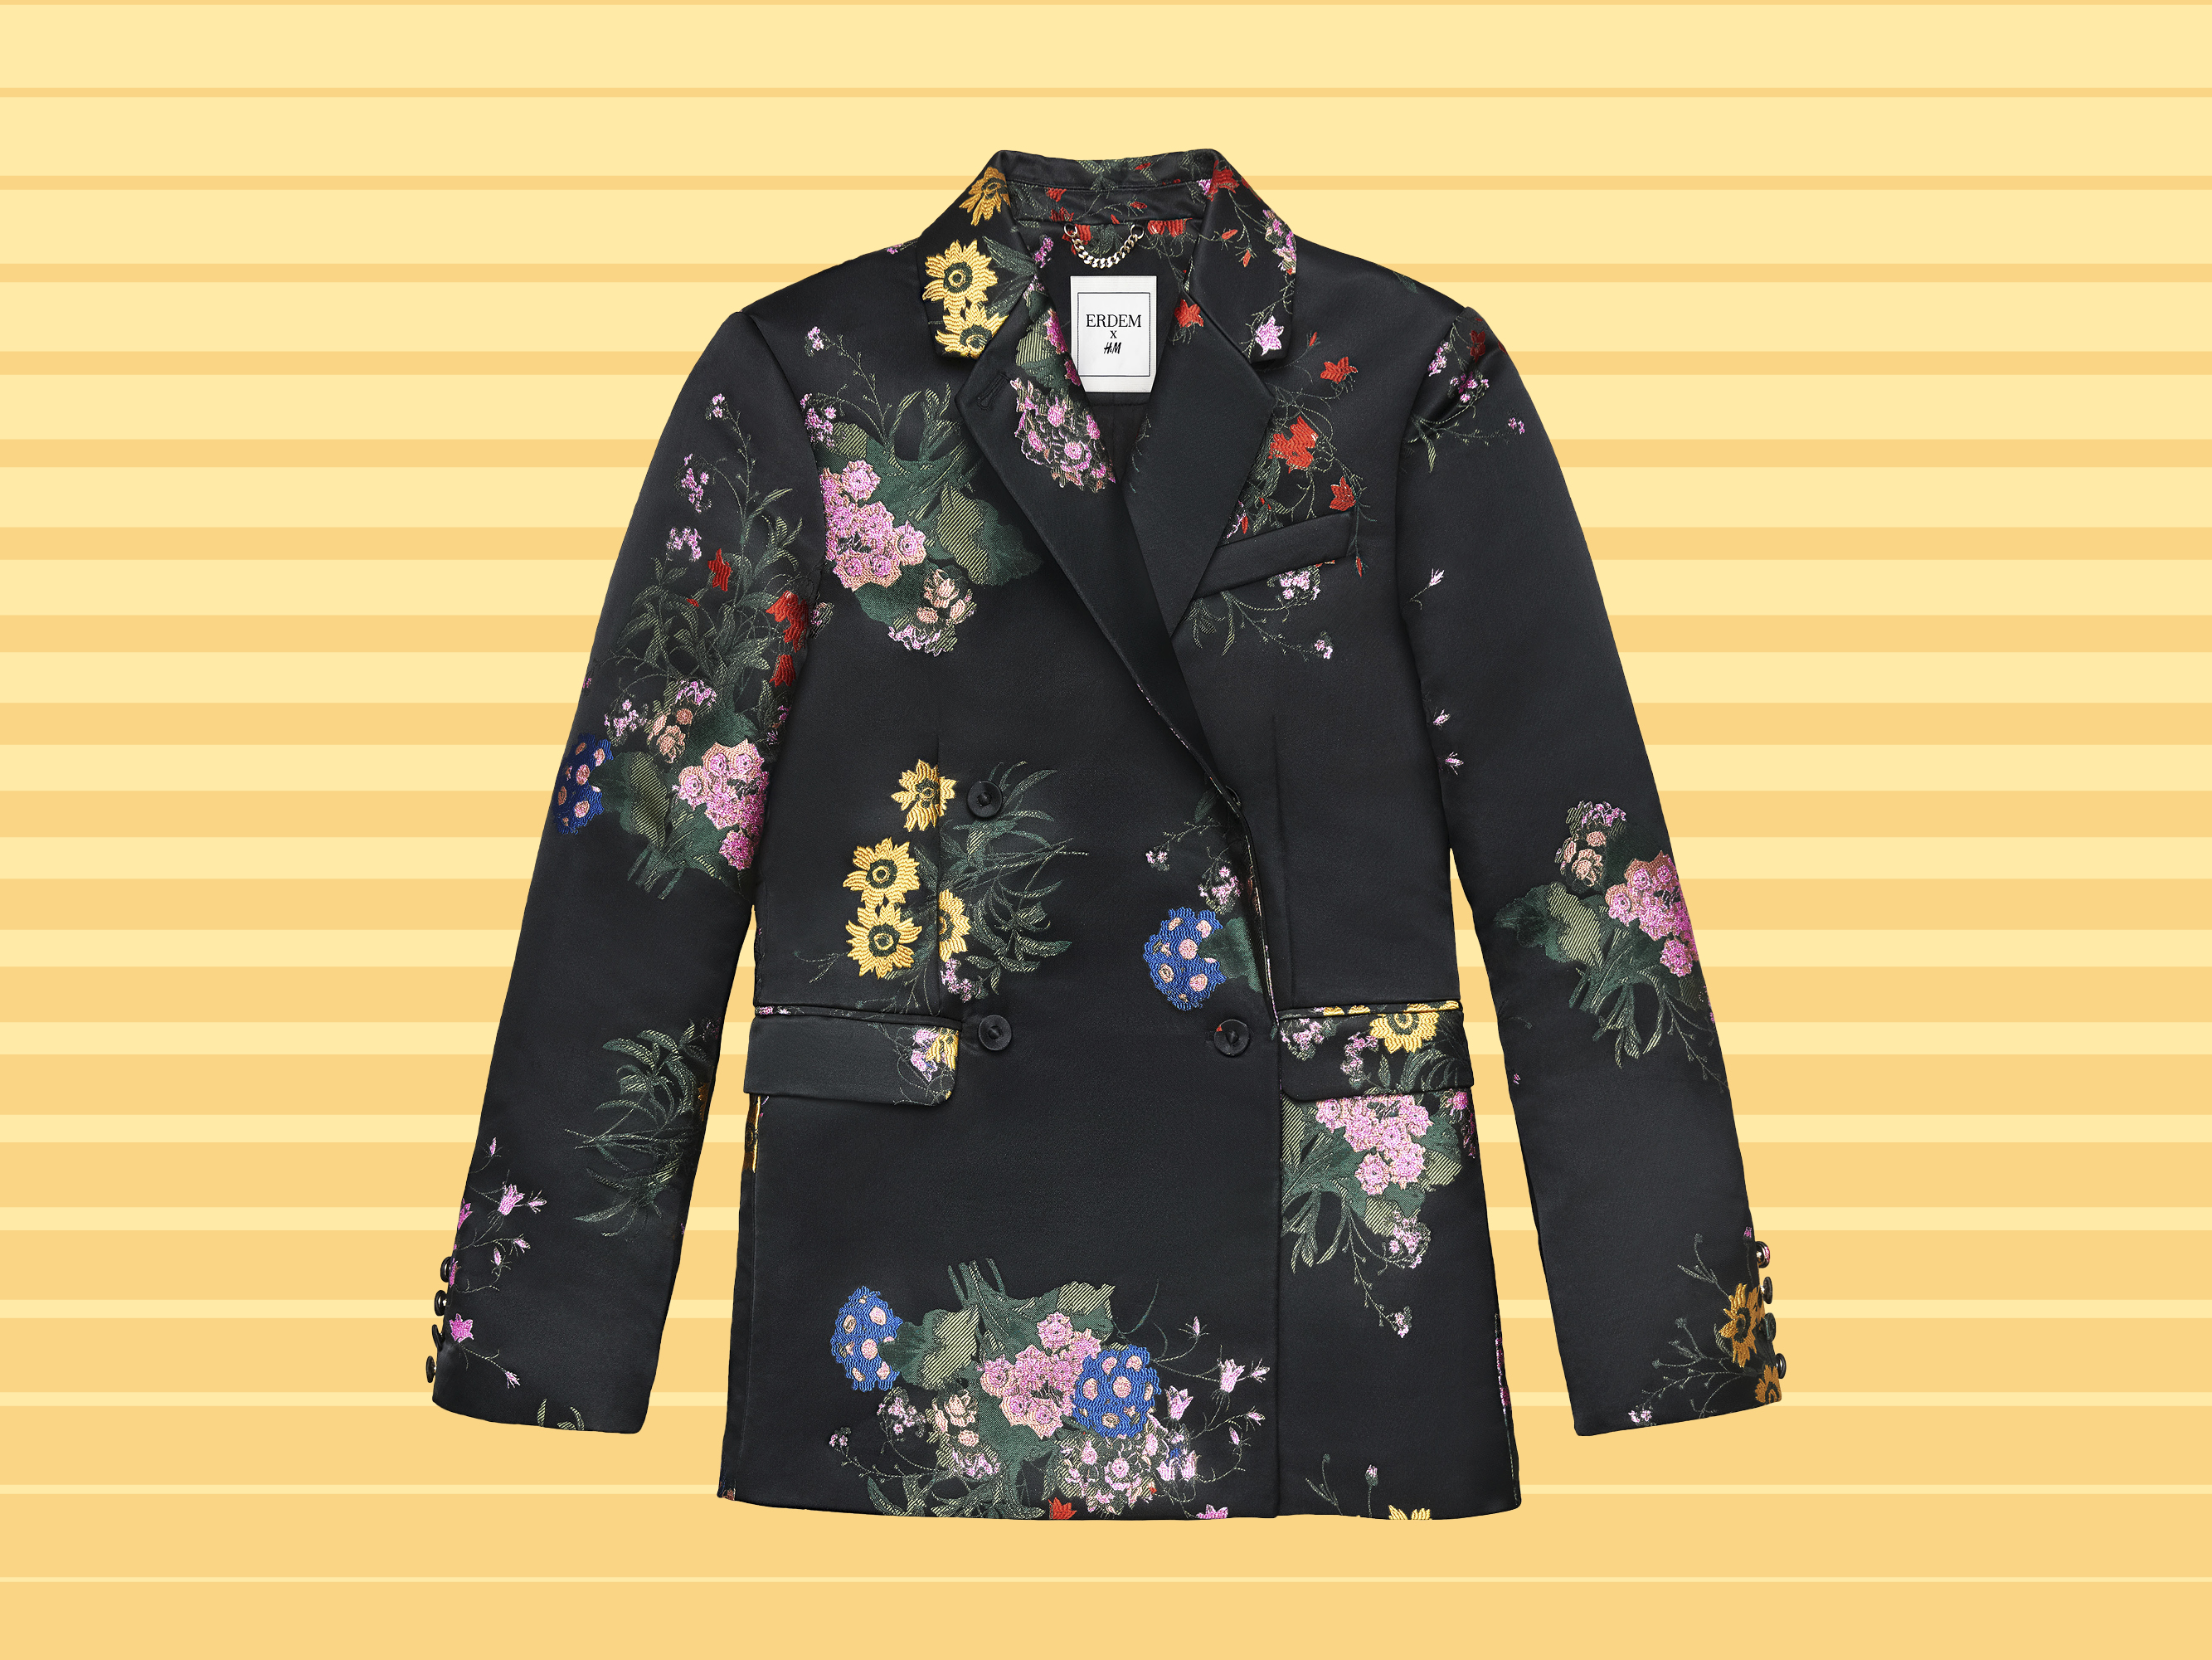 A floral blazer from the Erdem x H&M Collaboration